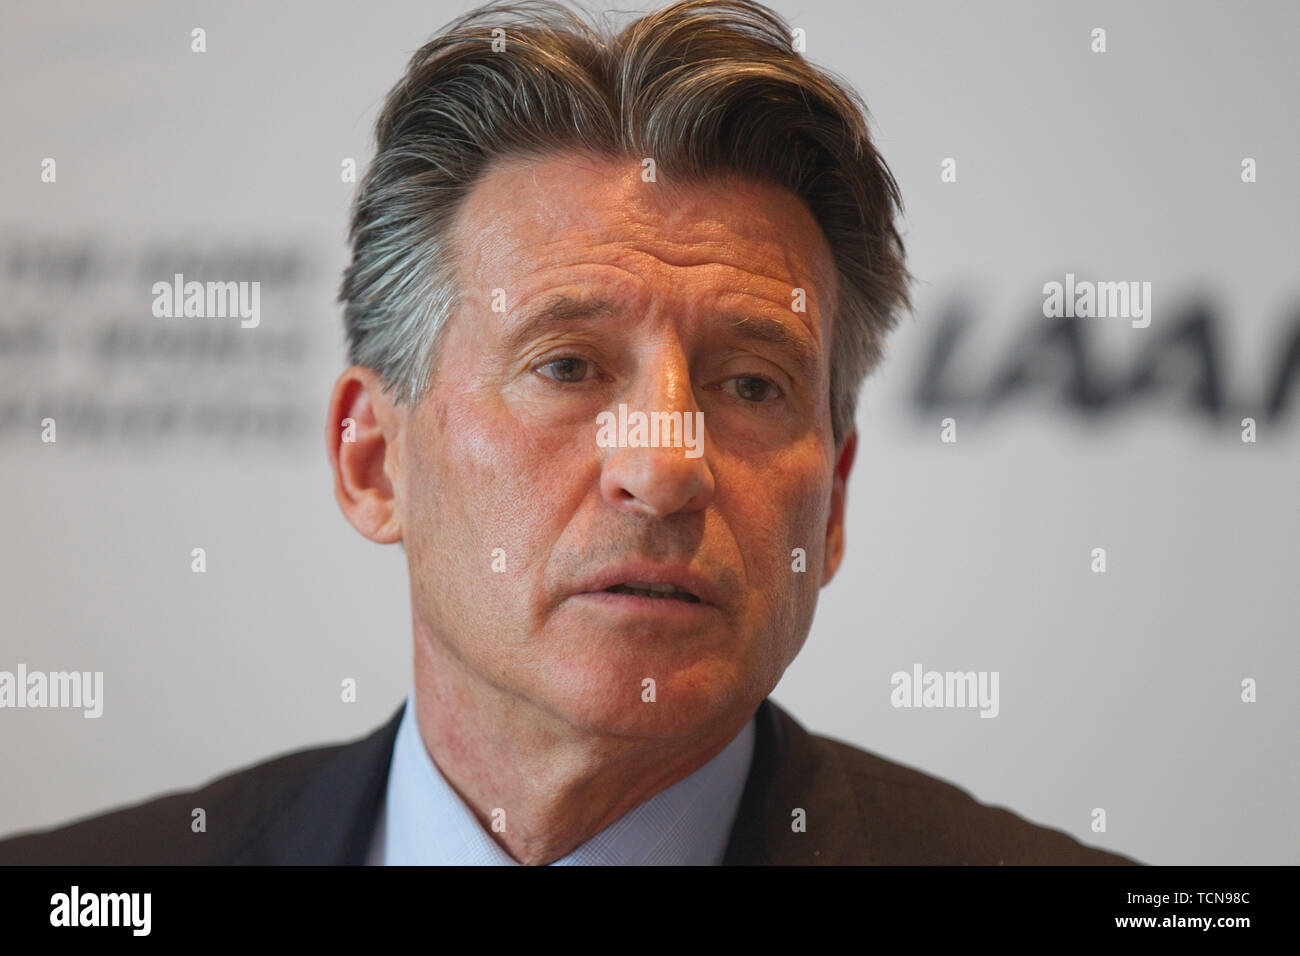 Athletics Federations. 09th June, 2019. Monaco, Monte Carlo - June 09, 2019: The 217th IAAF Council Meeting chaired by IAAF President Sebastian Coe. International Association of Athletics Federations. Athletic Credit: dpa/Alamy Live News - Stock Image